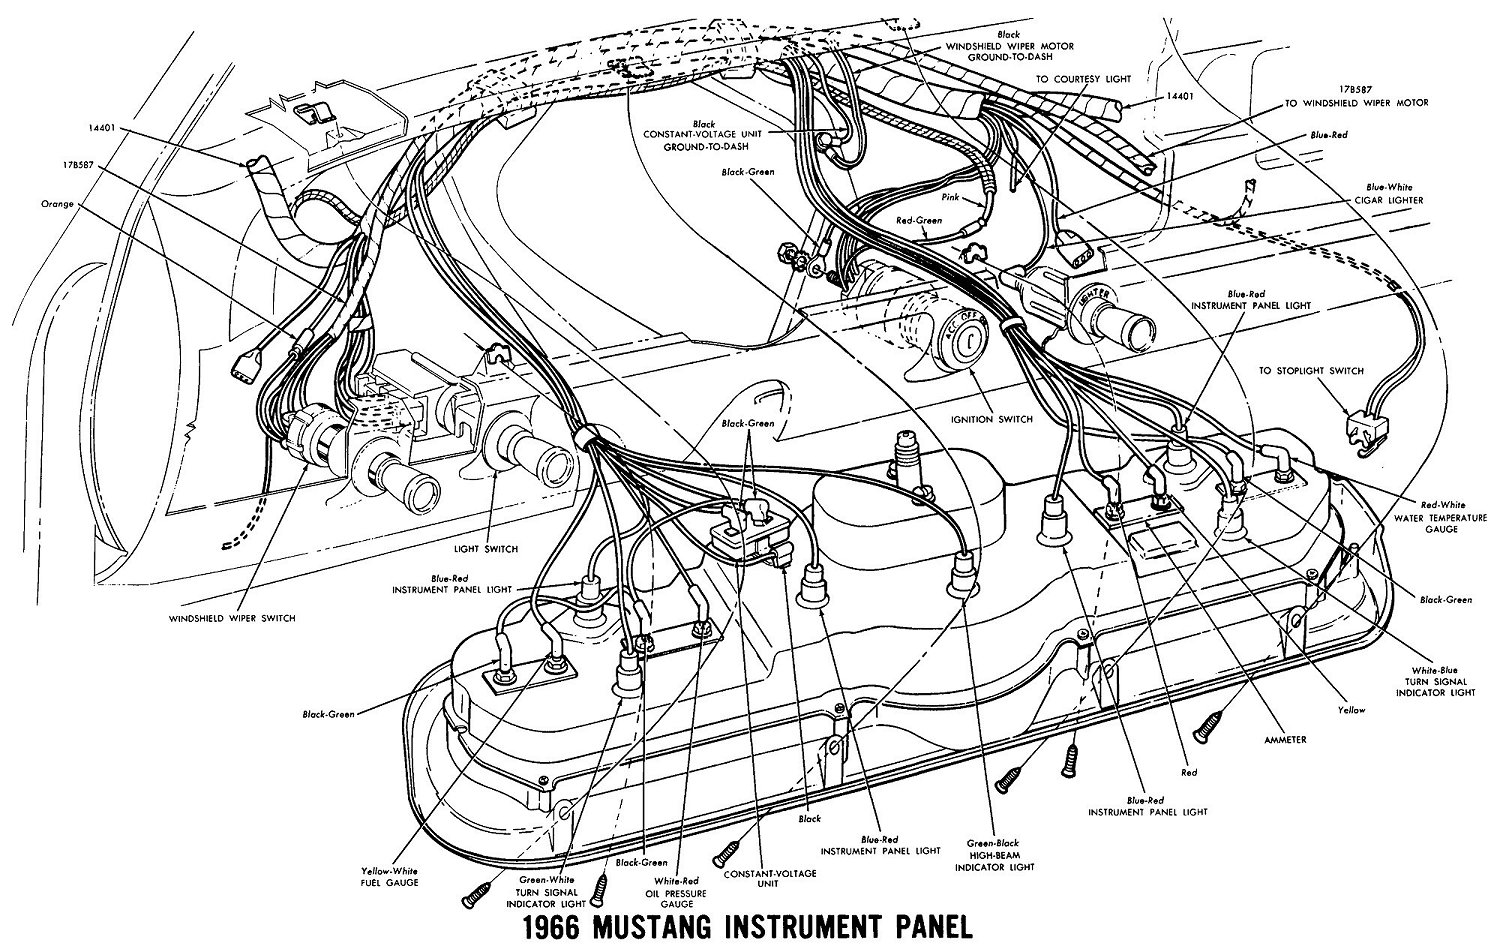 66InstrumentWiring lelu's 66 mustang 1966 mustang wiring diagrams 1966 ford mustang wiring diagram at crackthecode.co